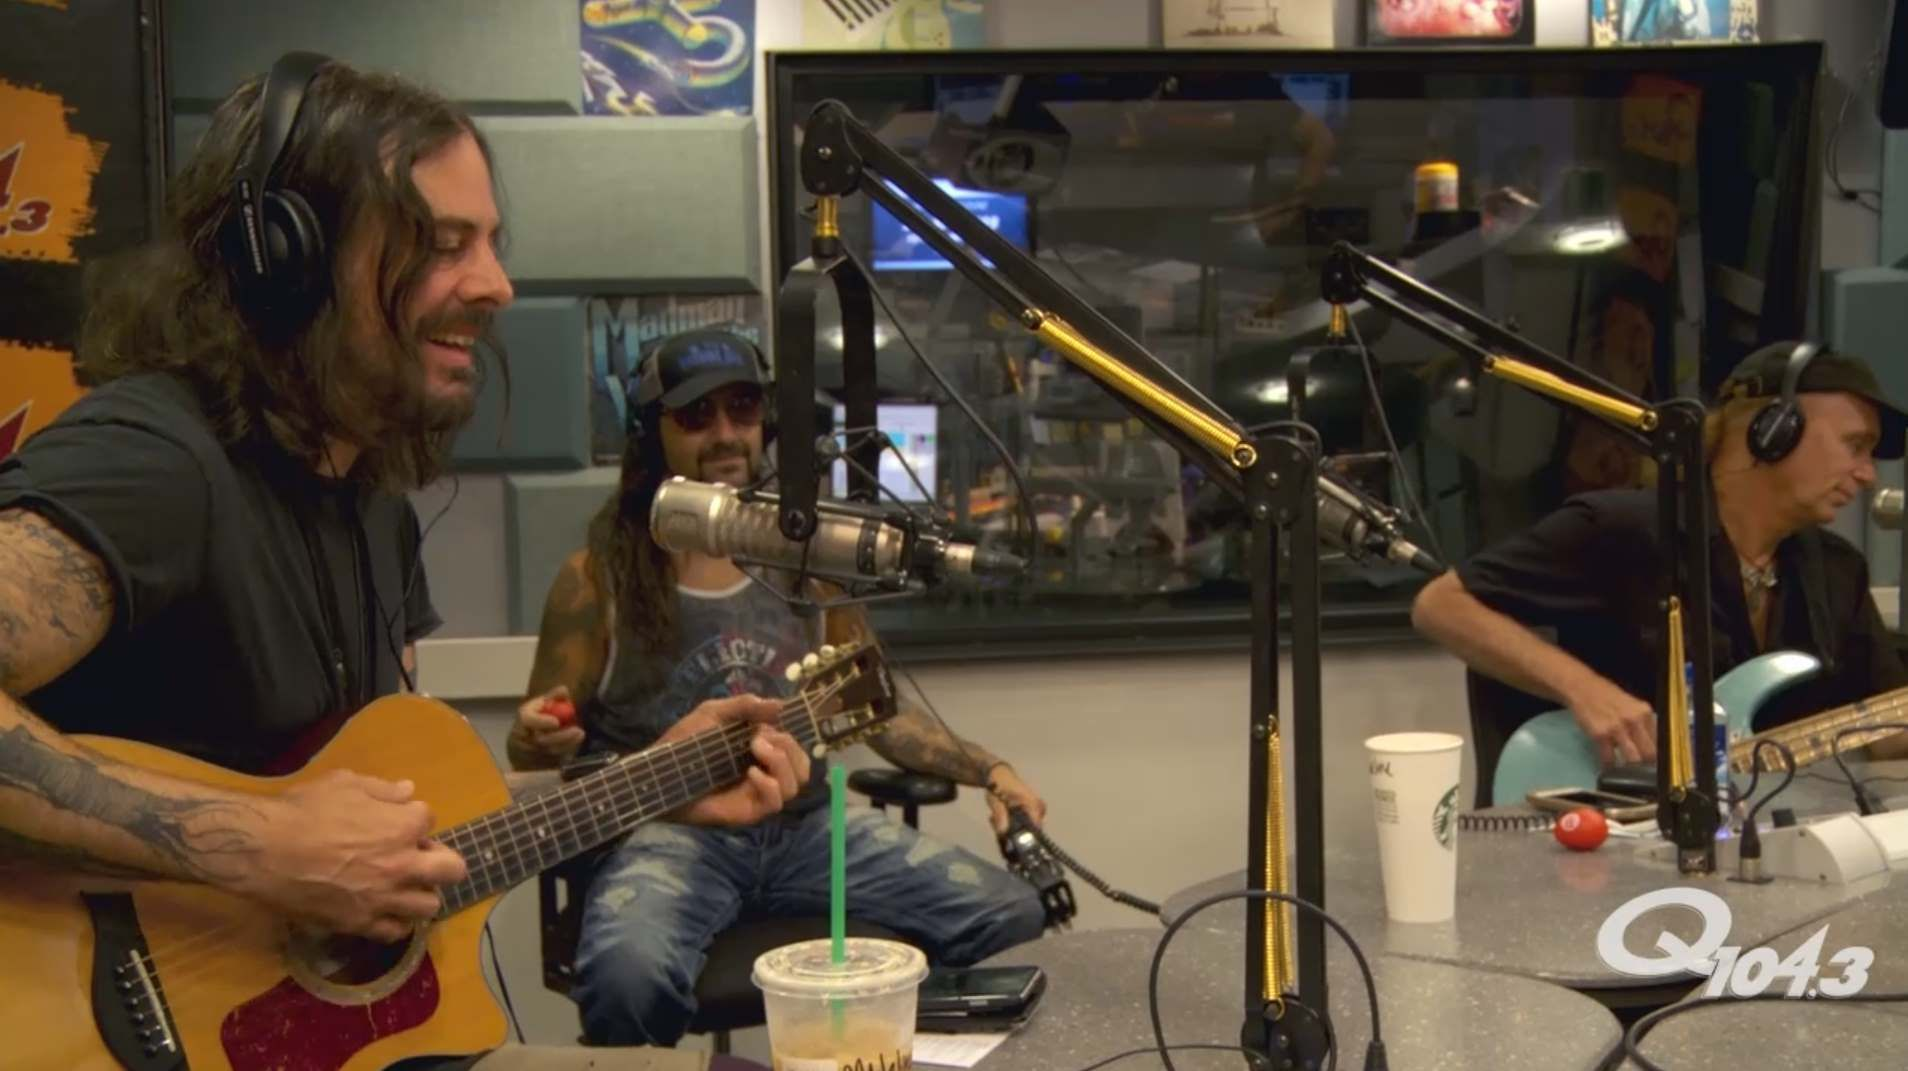 The Winery Dogs Play 'Fire' Unplugged for NYC Radio Station Q104.3 - http://www.tunescope.com/news/the-winery-dogs-play-fire-unplugged-for-nyc-radio-station-q104-3/